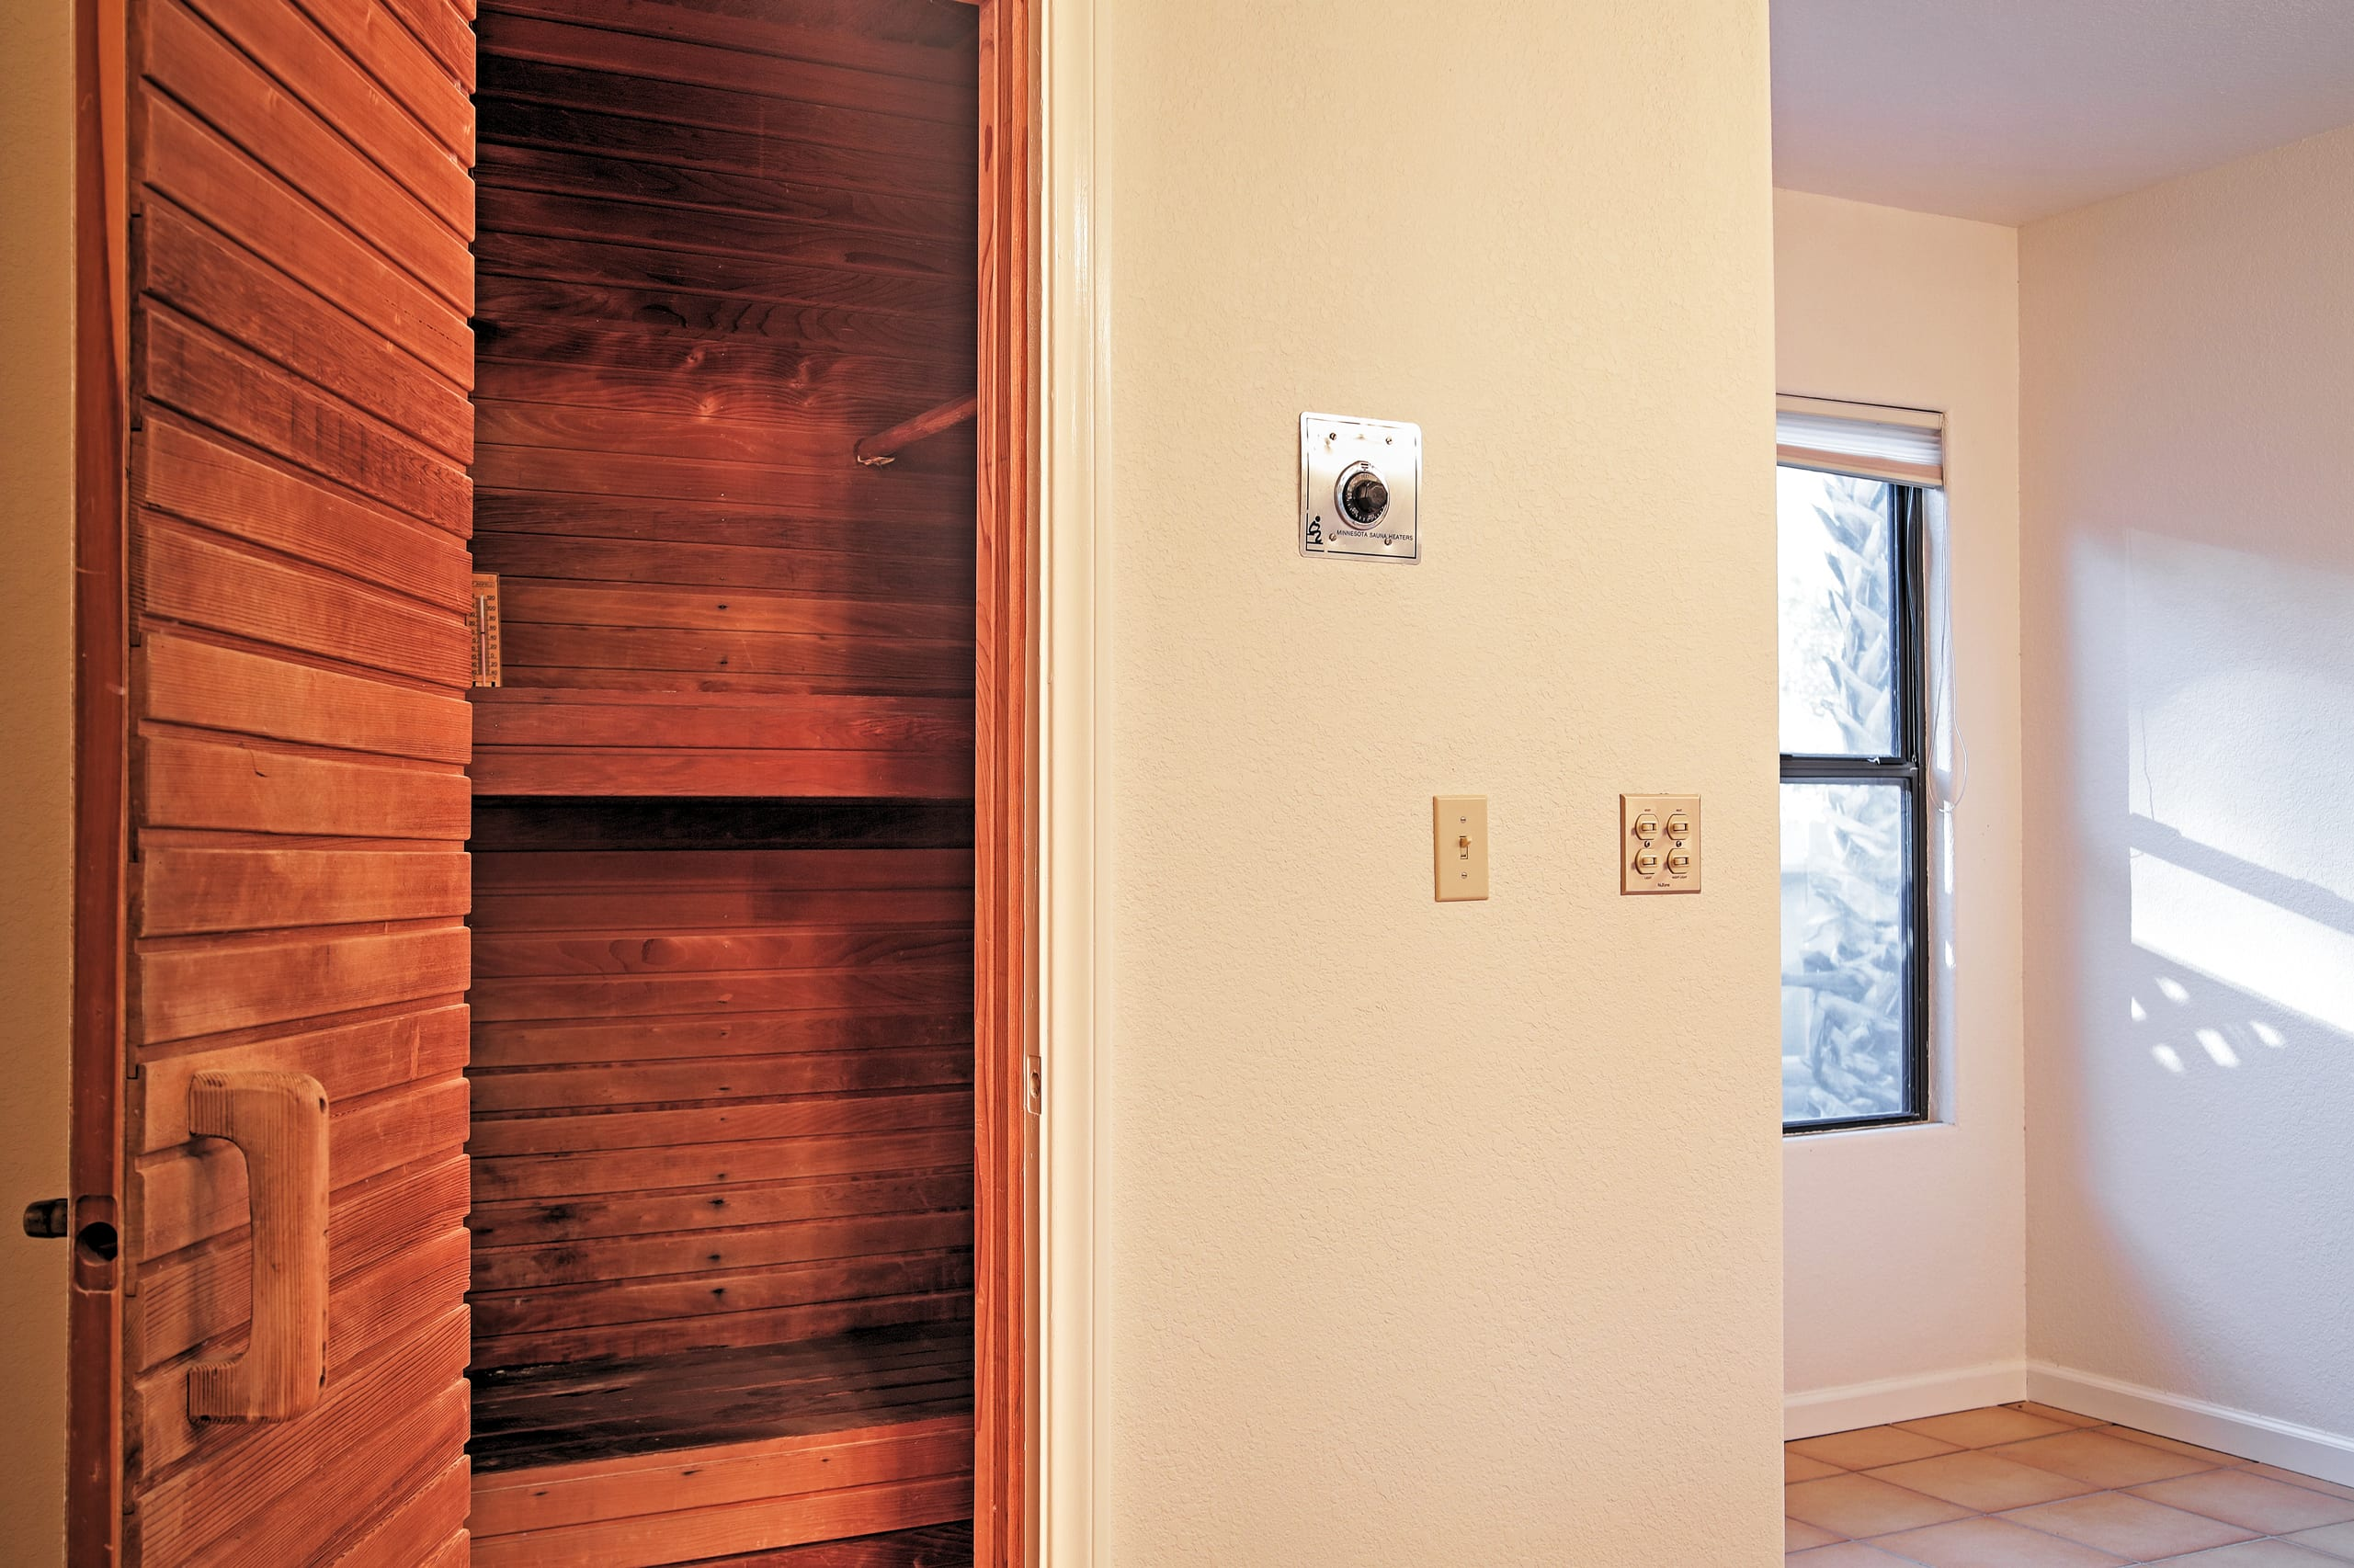 Step into the relaxing sauna to sweat all your troubles away!